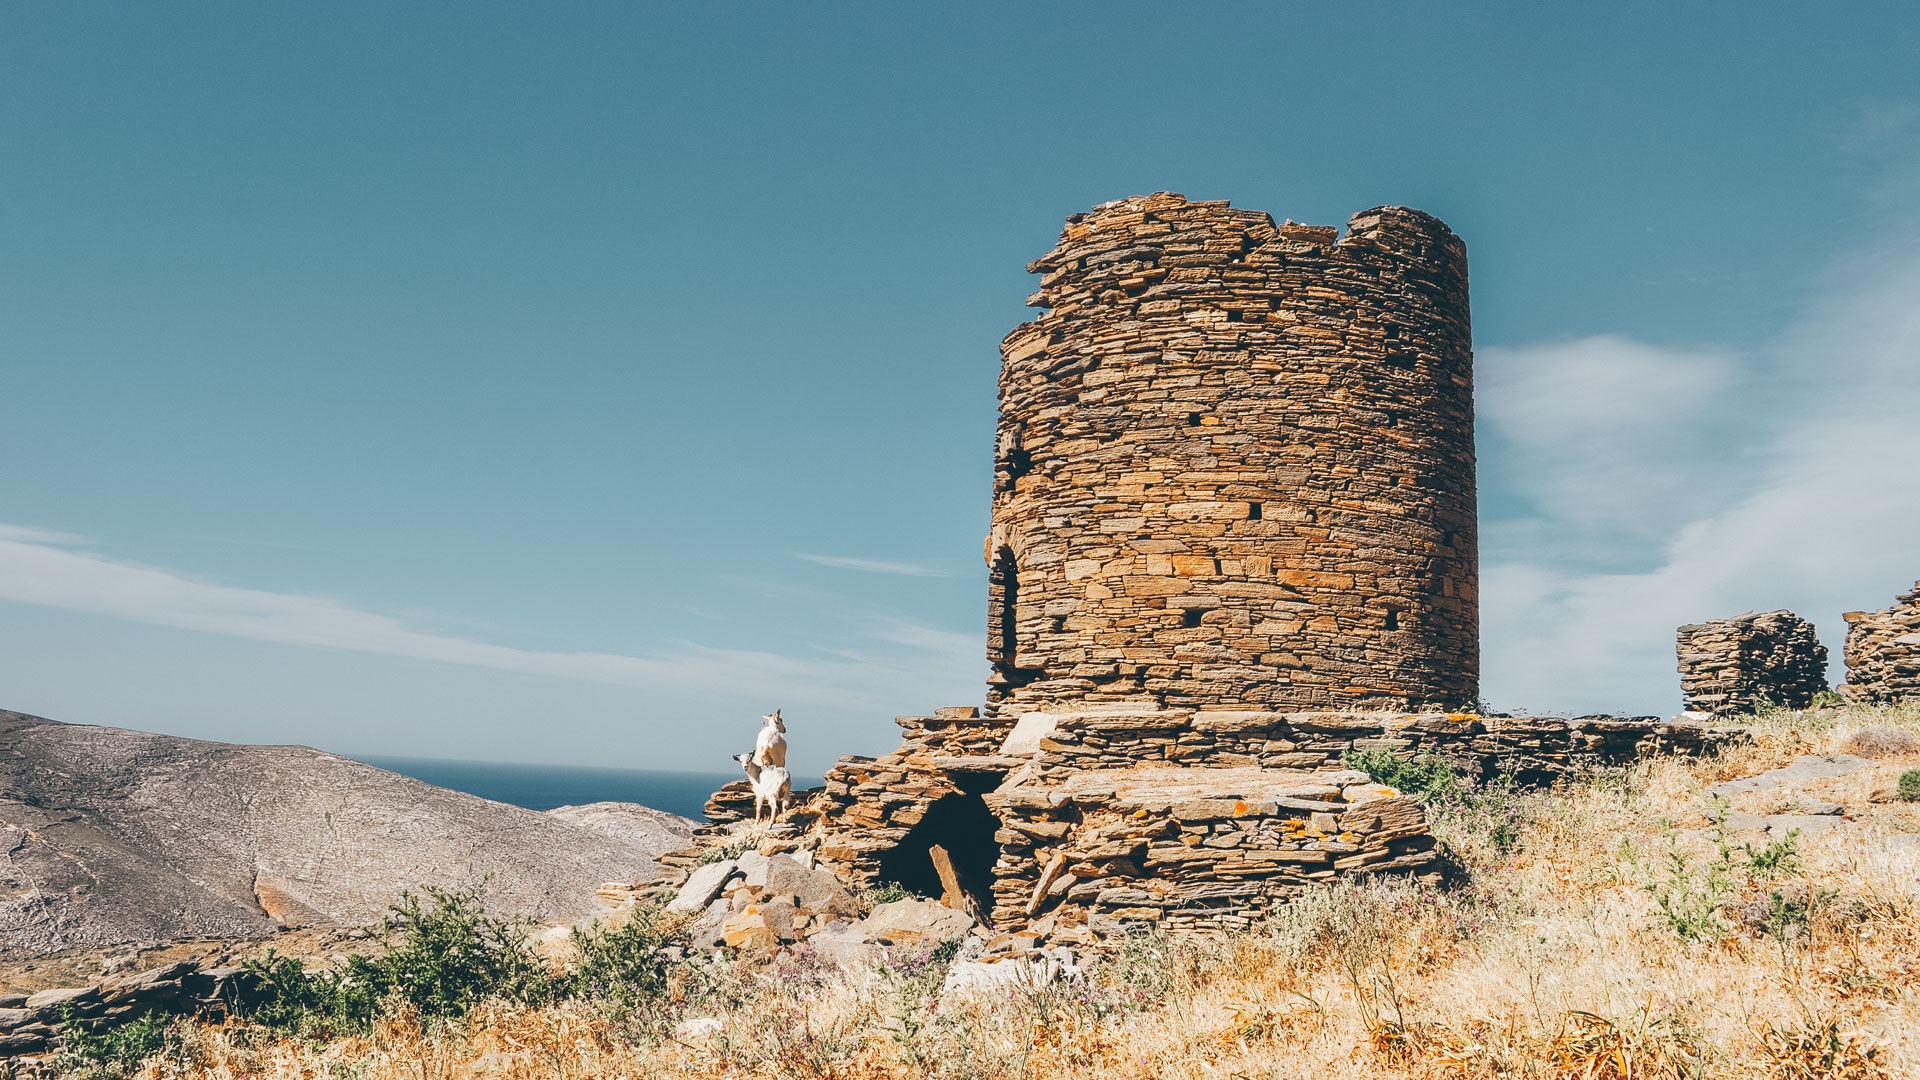 It takes no time to be captivated by the island of Tinos and its many historical highlights, which is why hiking is absolutely the best way to discover it